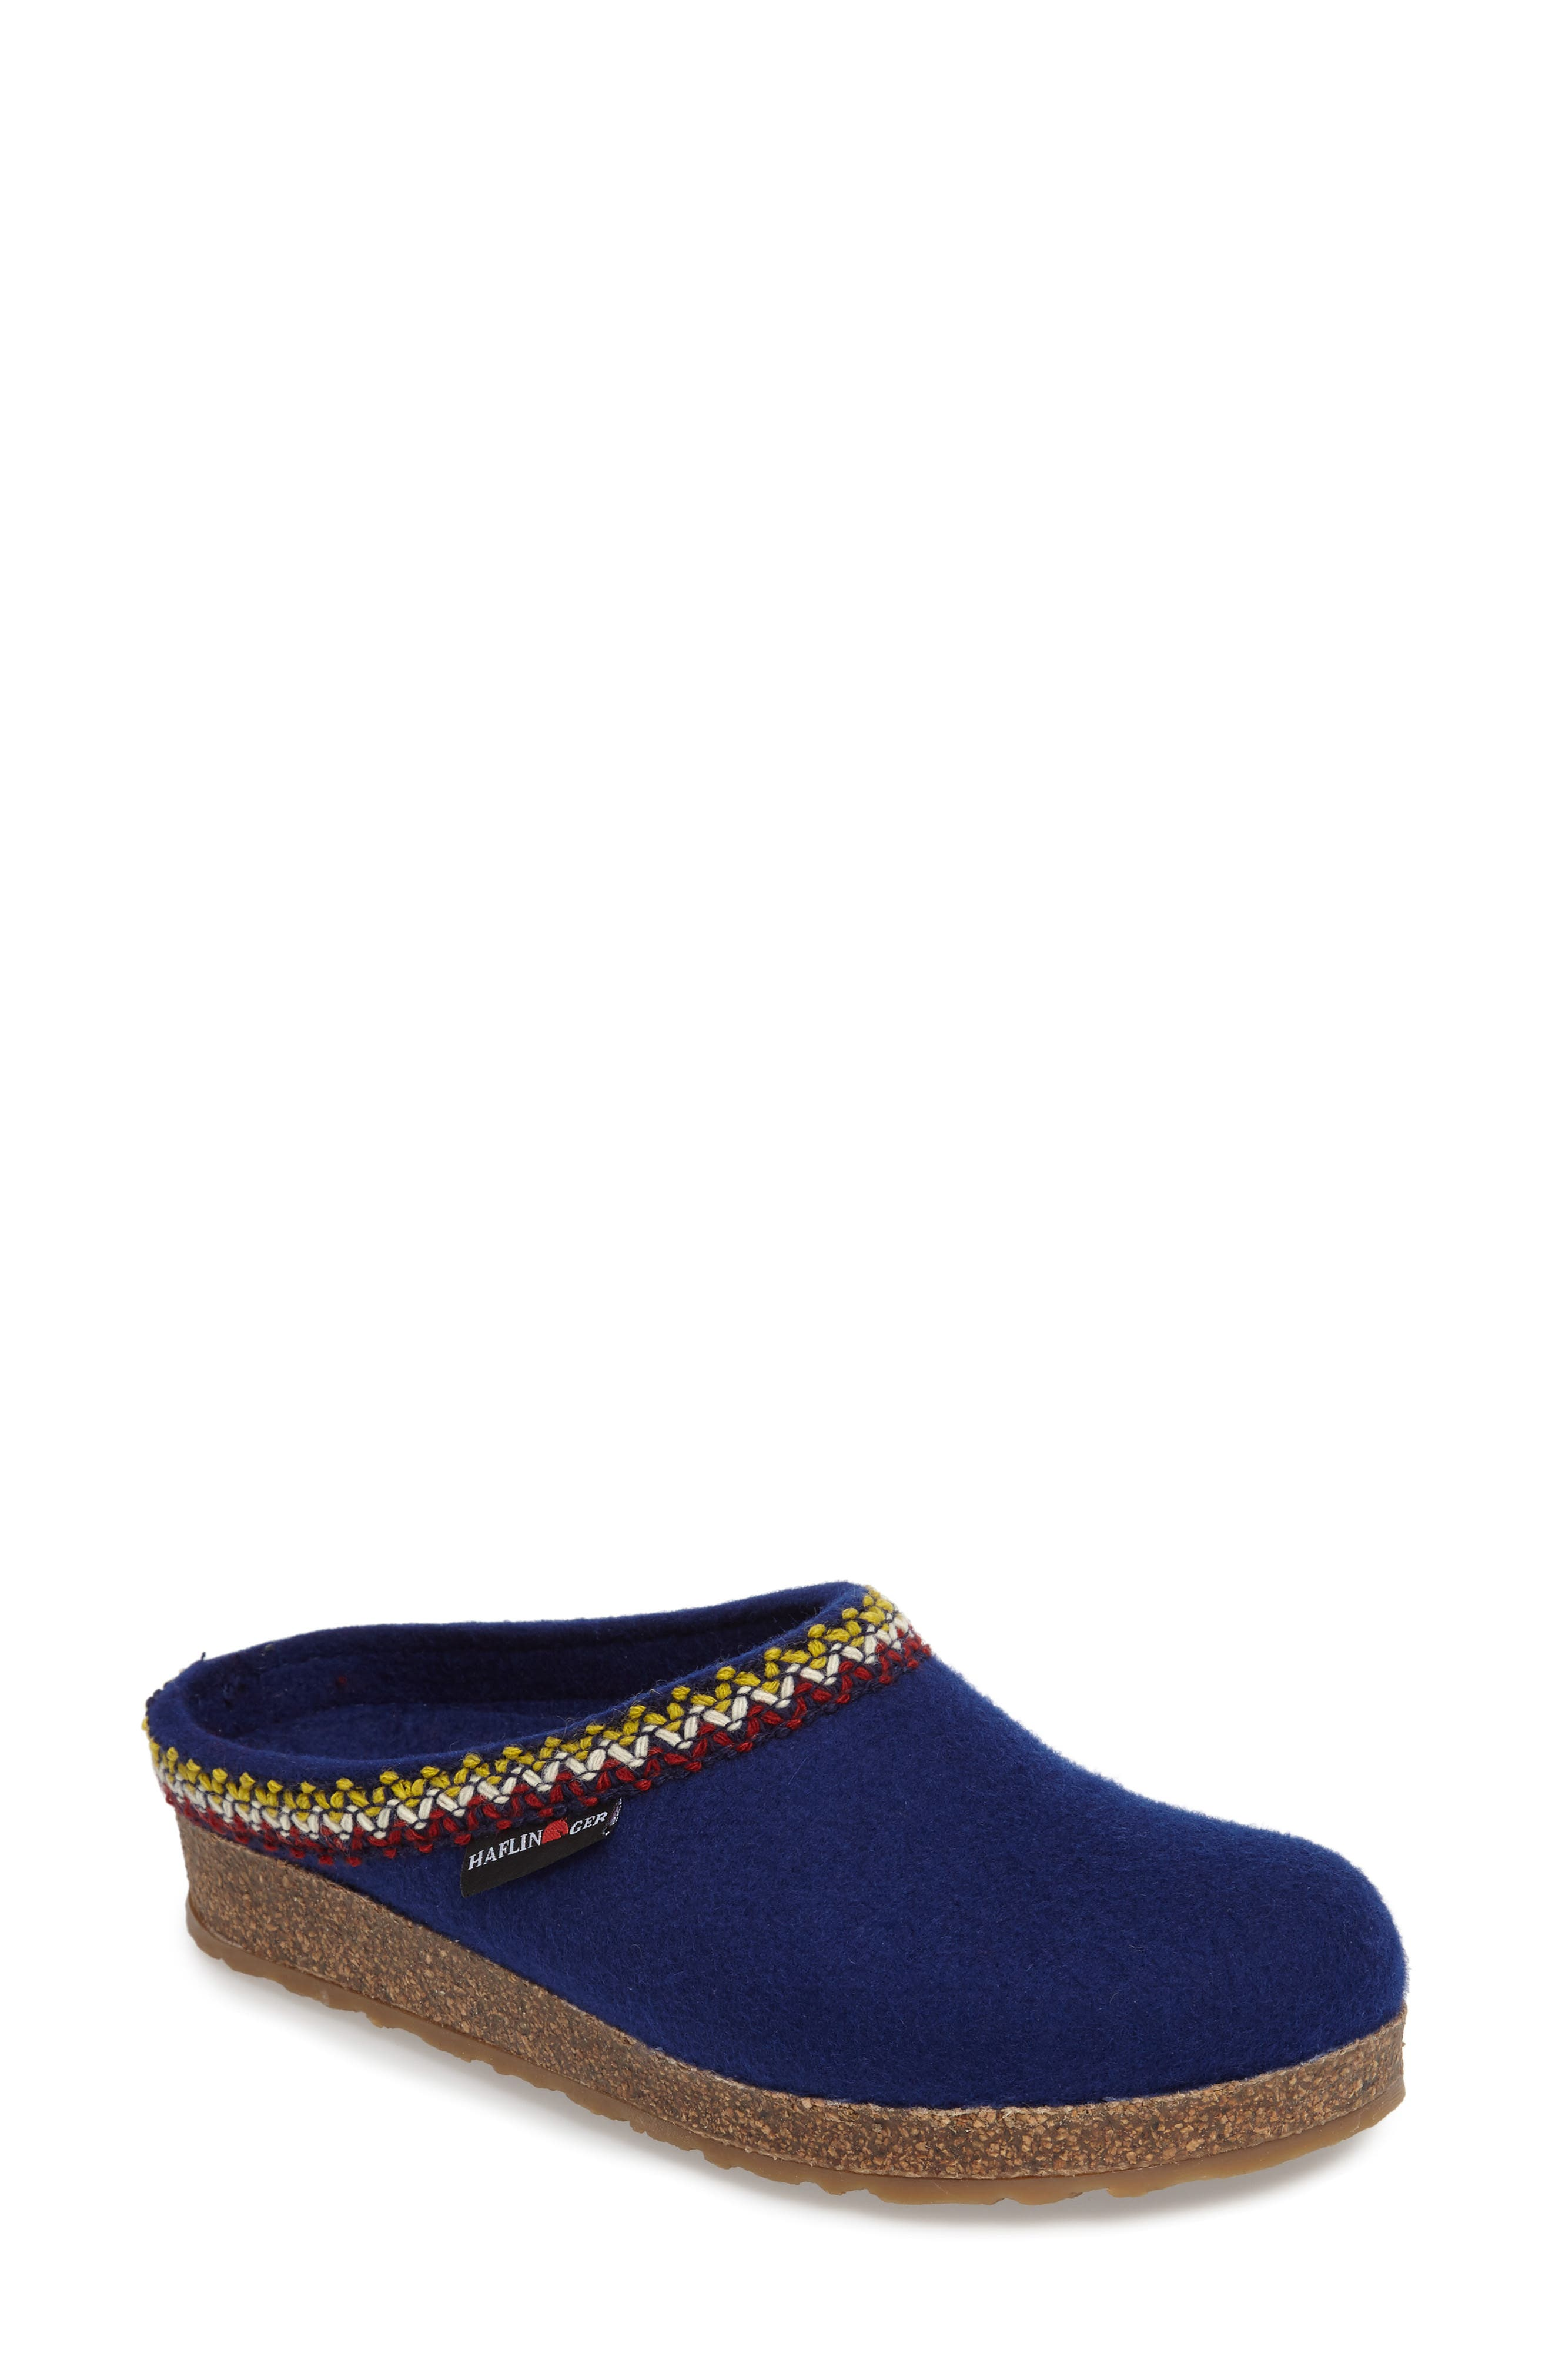 Zigzag Slipper,                             Alternate thumbnail 6, color,